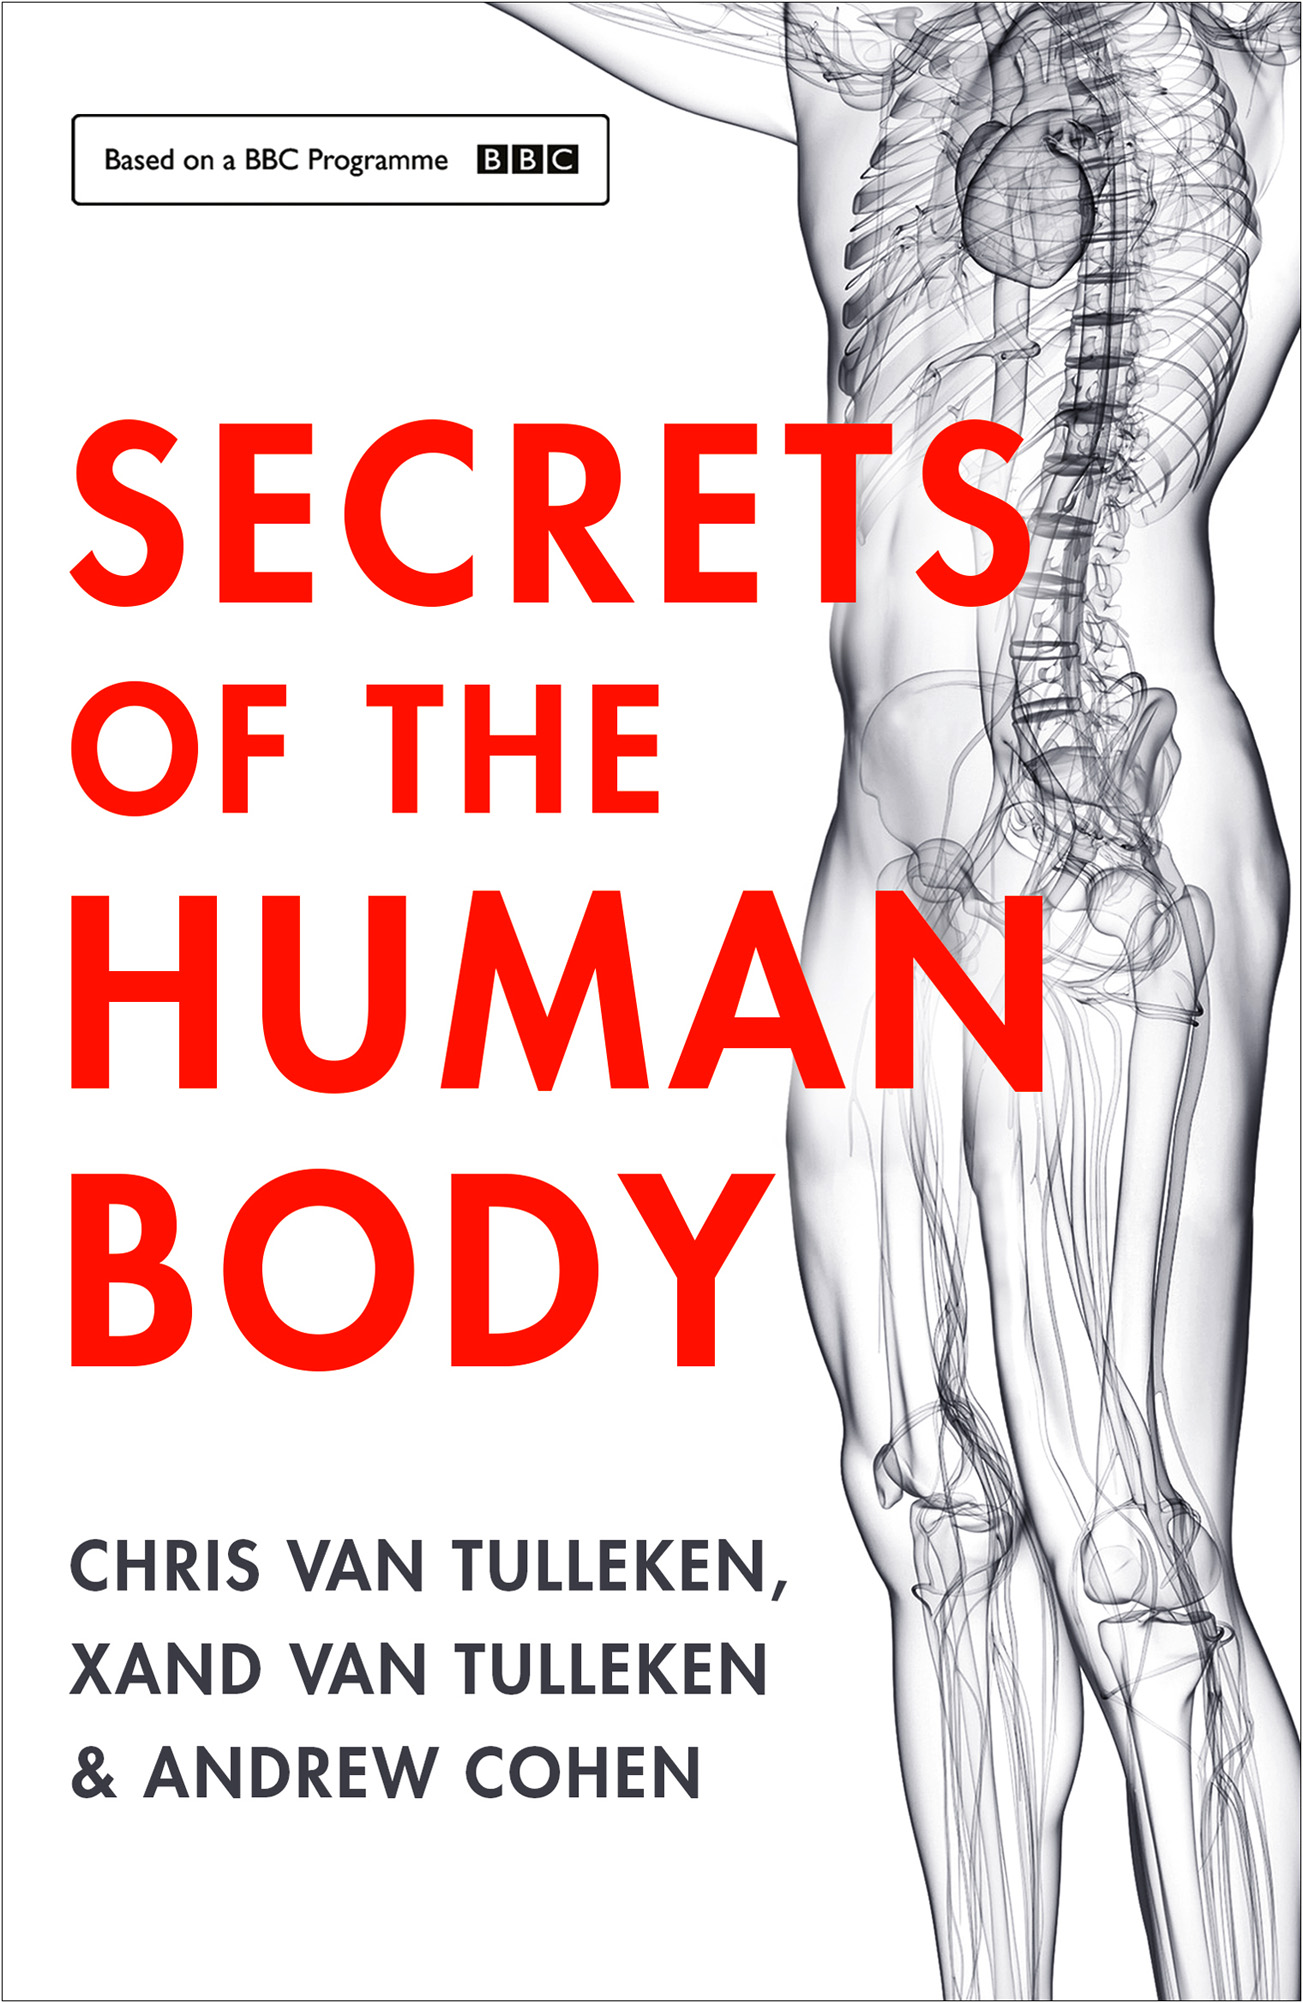 Andrew Cohen Secrets of the Human Body malcolm kemp extreme events robust portfolio construction in the presence of fat tails isbn 9780470976791